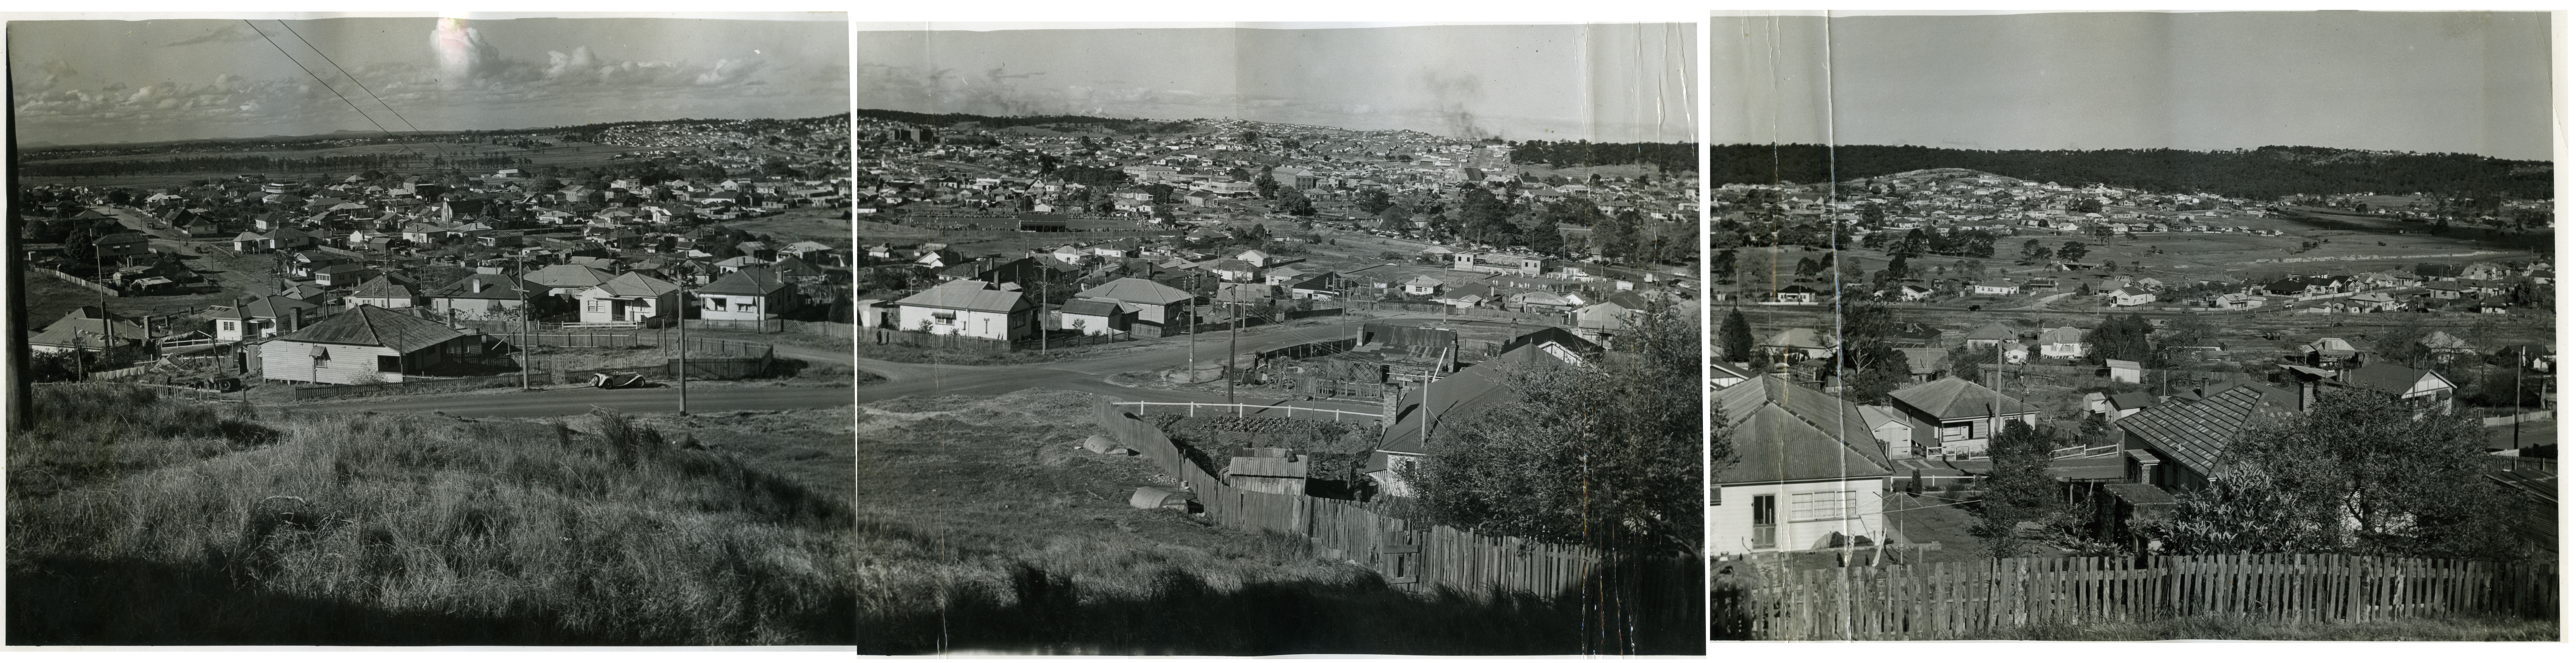 View of Wallsend and Plattsburg from Conn's Hill (1955)